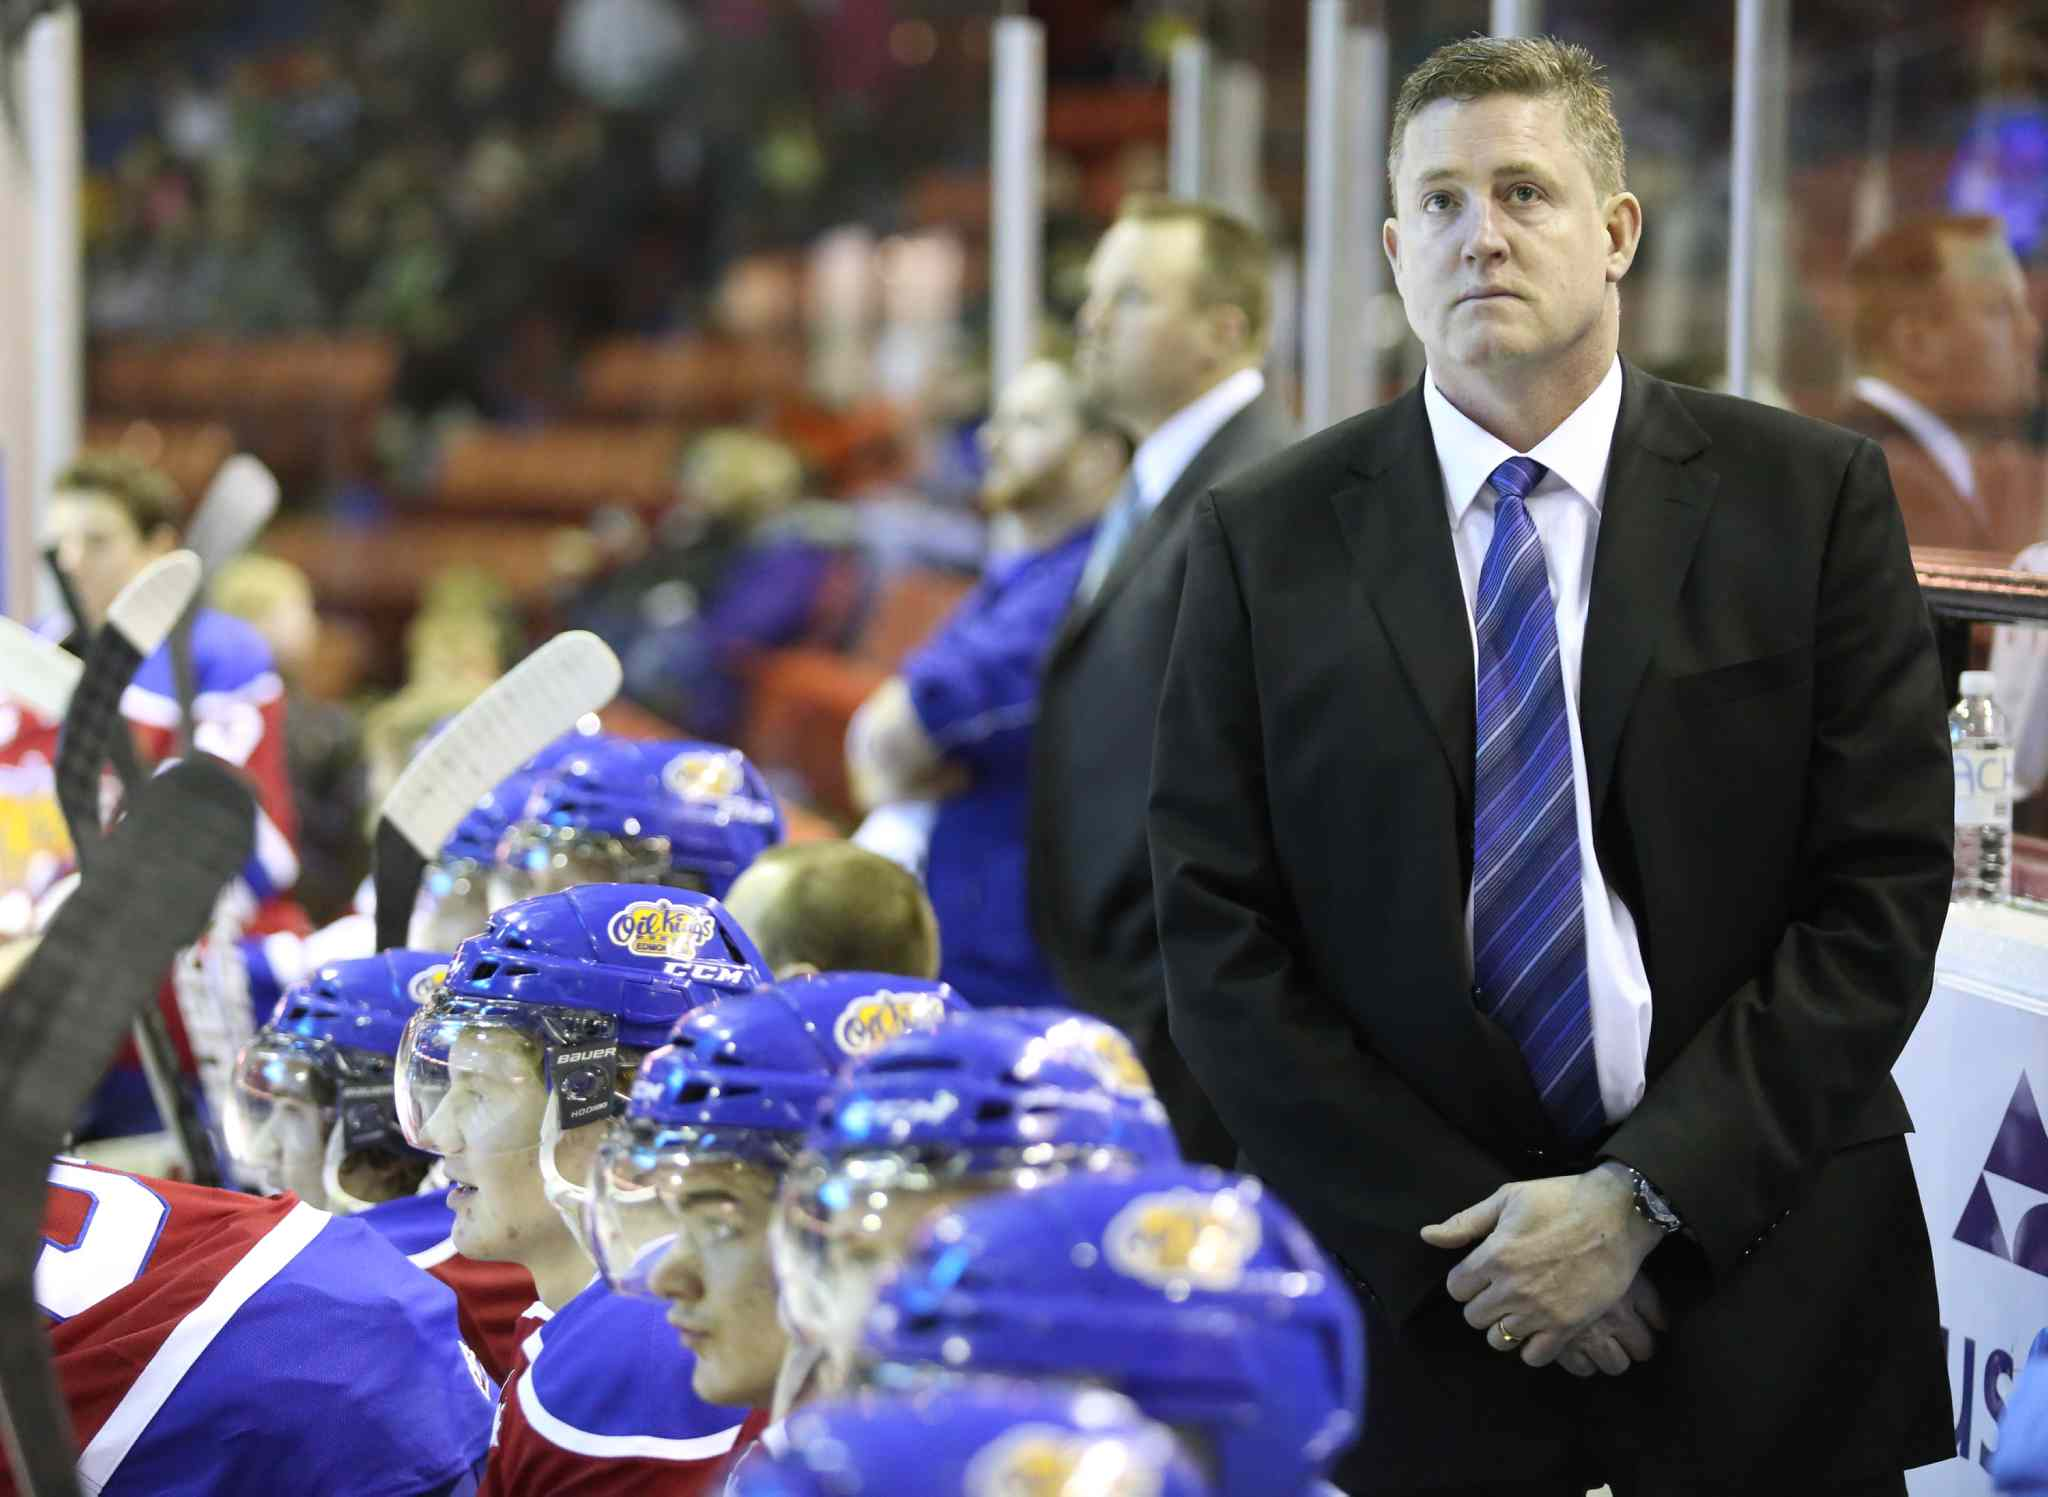 Edmonton Oil Kings head coach Derek Laxdal behind the bench at a game against the Brandon Wheat Kings.